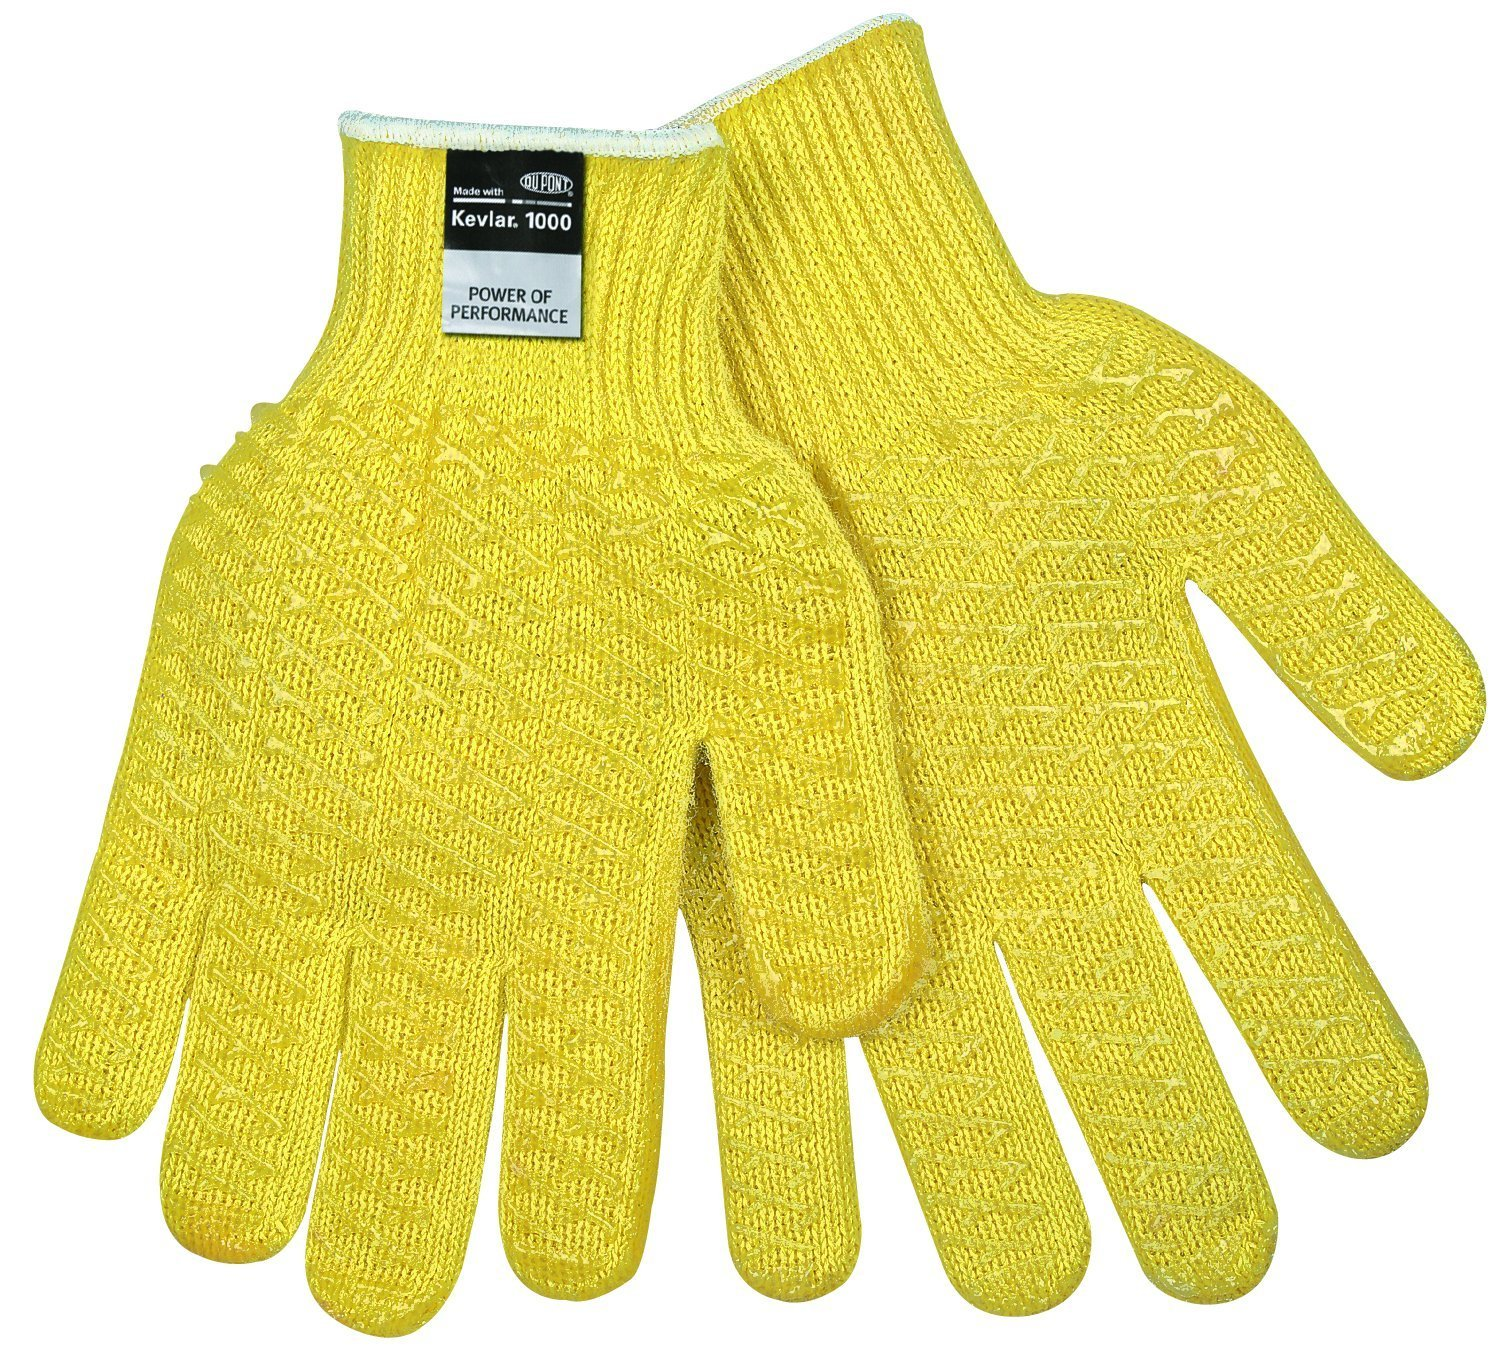 MCR Safety 9370HL Kevlar Regular Weight 7 Gauge Gloves with PVC Honeycomb Pattern and Dots On 2-Side, Yellow, Large, 1-Pair